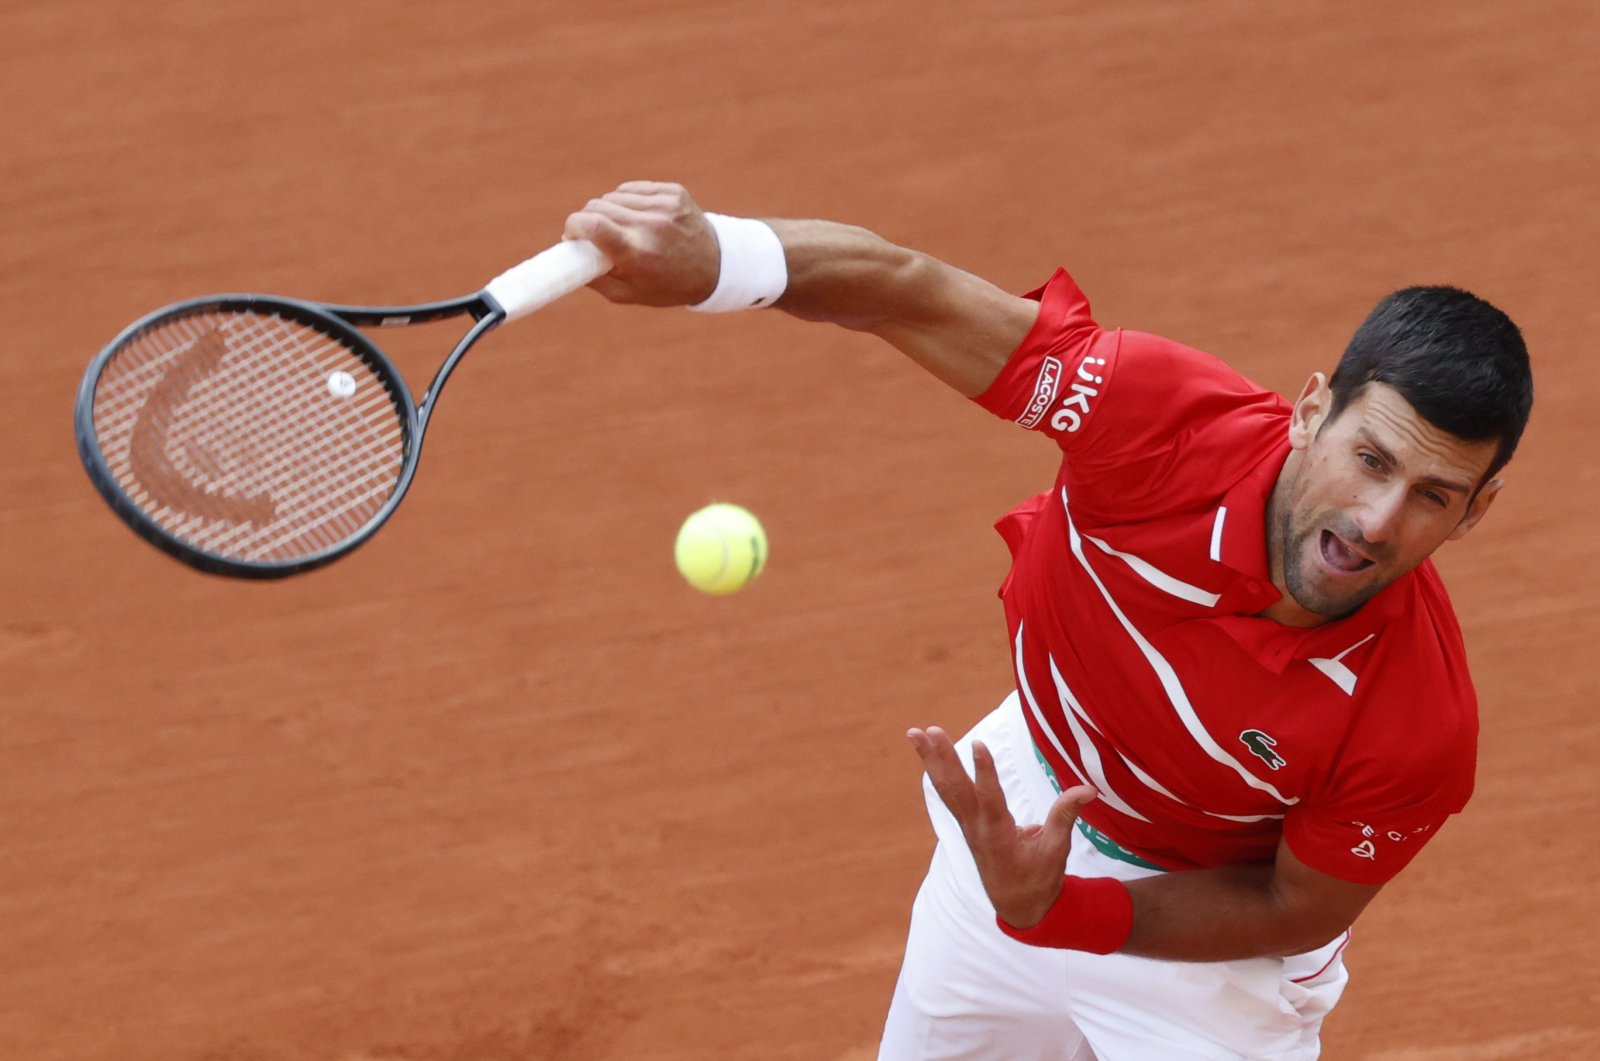 Novak Djokovic in action during his French Open match against Ricardas Berankis, in Paris, France, Oct. 1, 2020. (Reuters Photo)